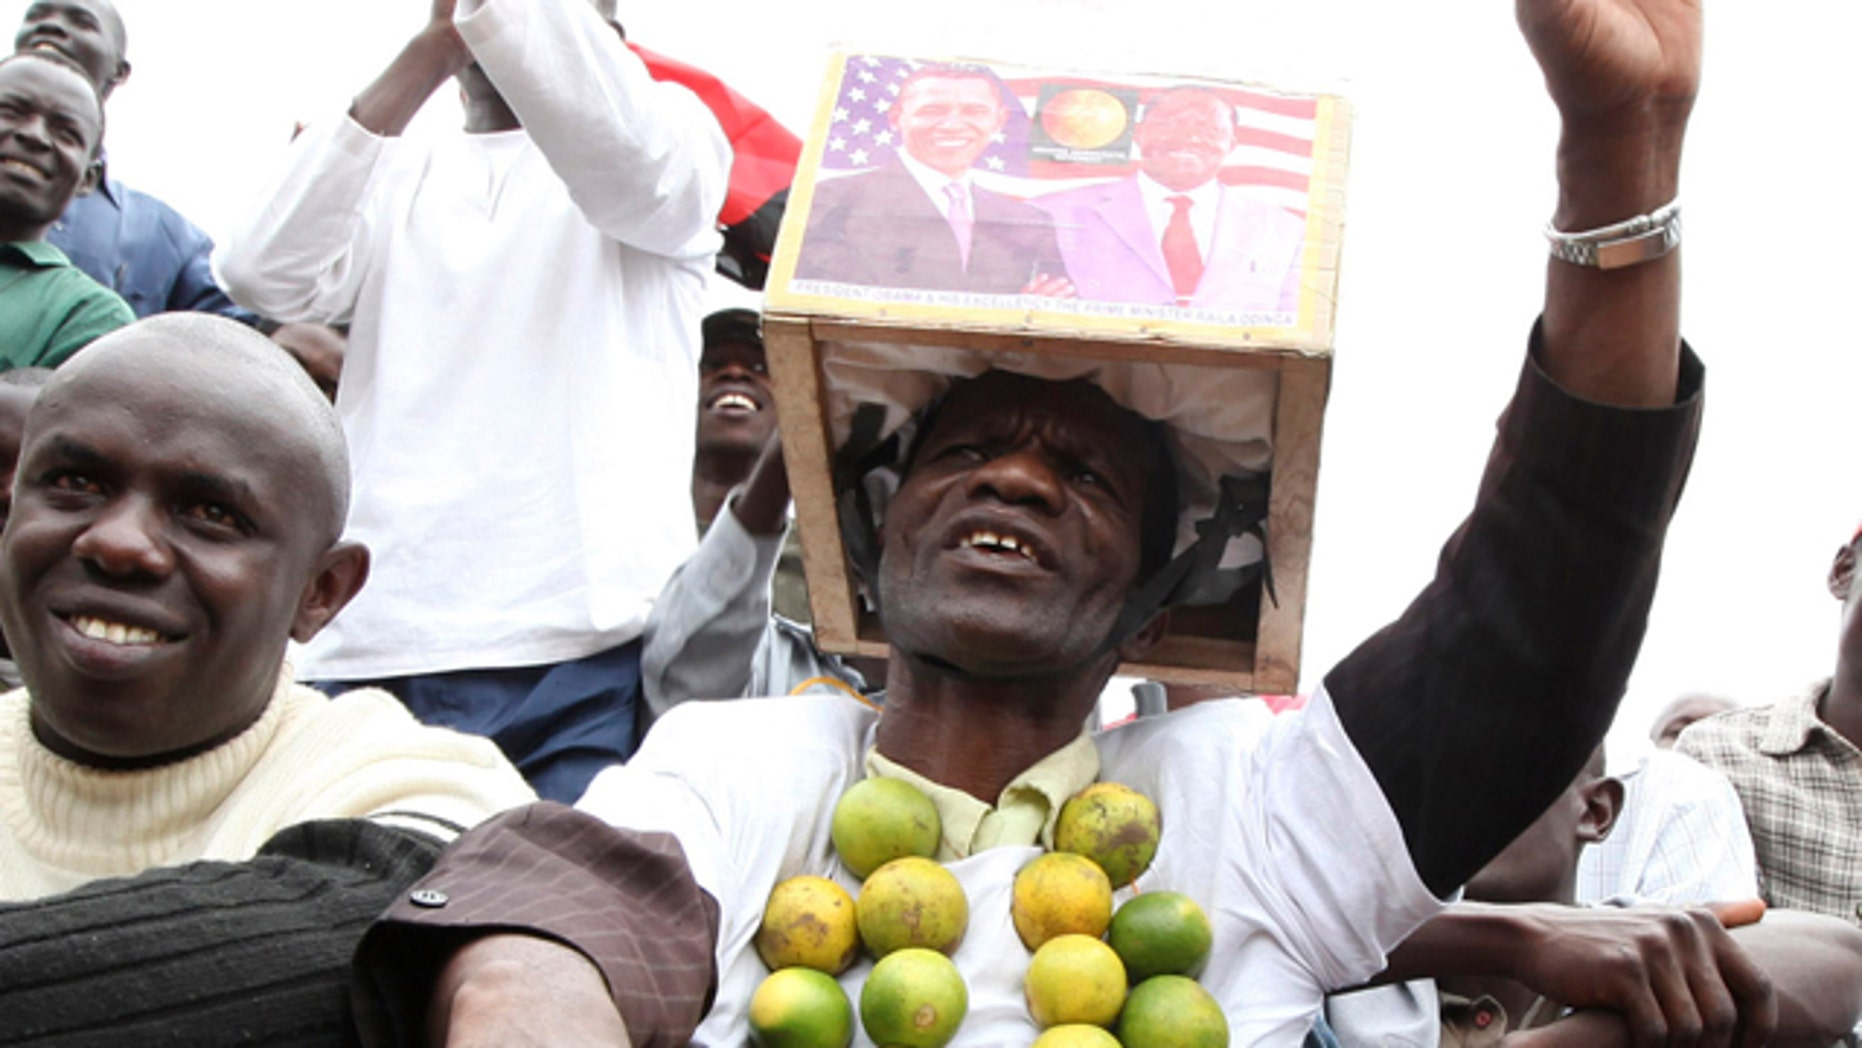 May 15, 2010: Kenyan supporters cheer at a rally in capital Nairobi to launch campaigns for the constitution referendum.